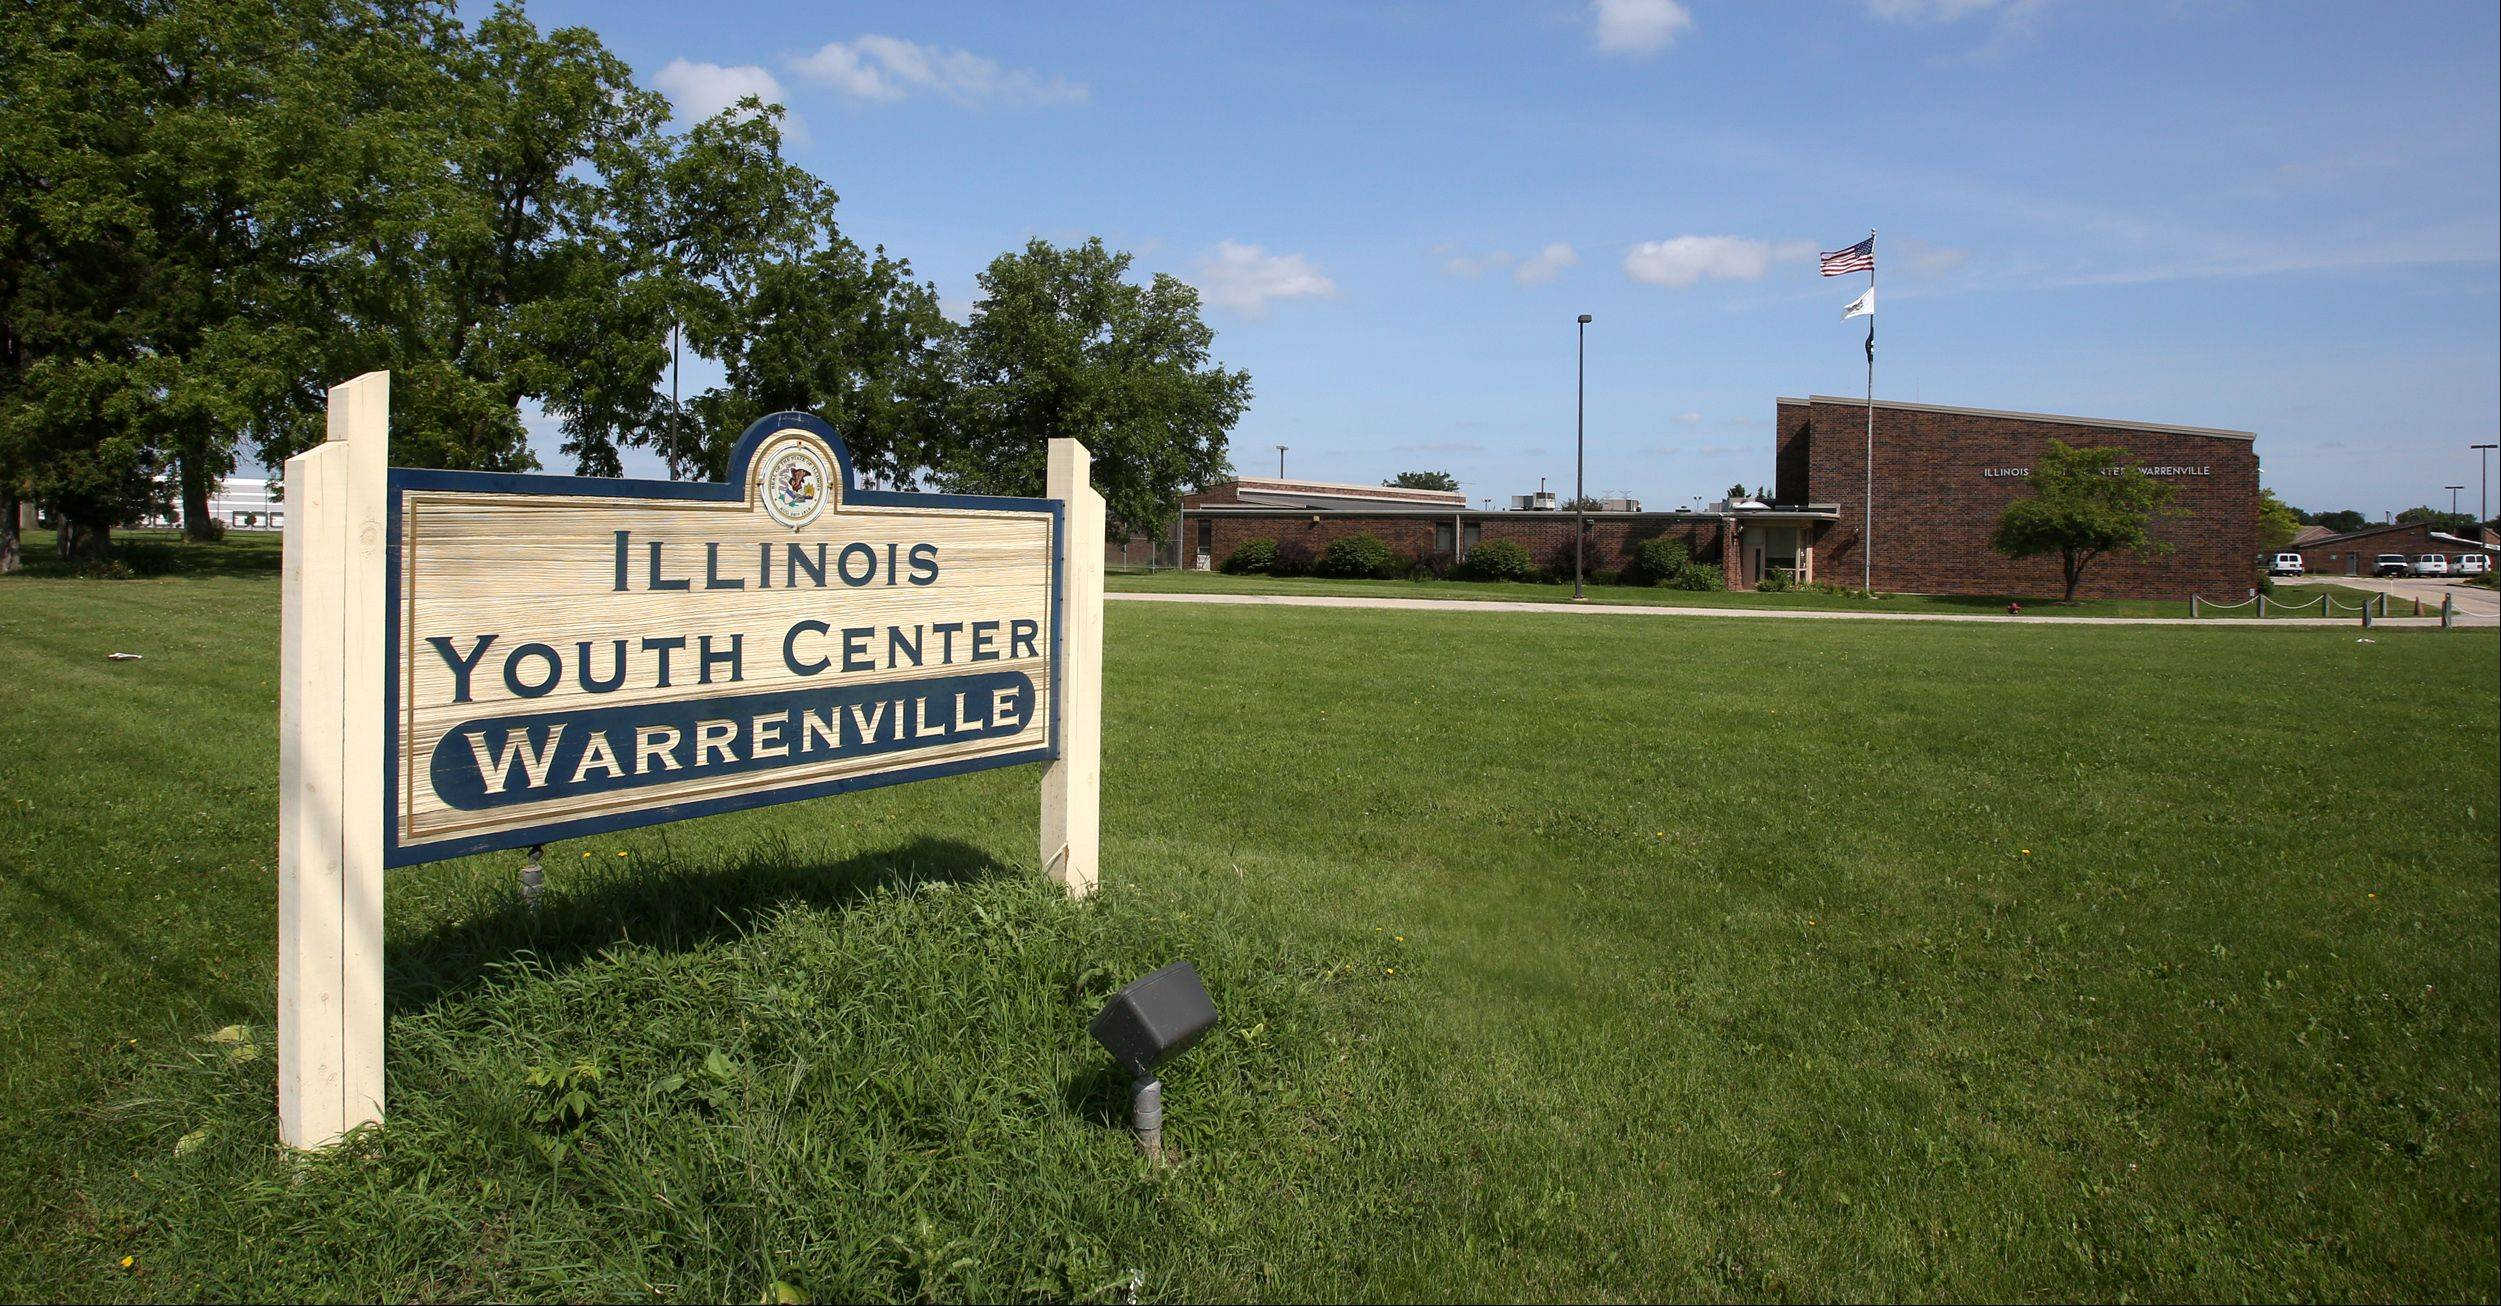 The Illinois Youth Center in Warrenville saw four suicide attempts in late 2012.